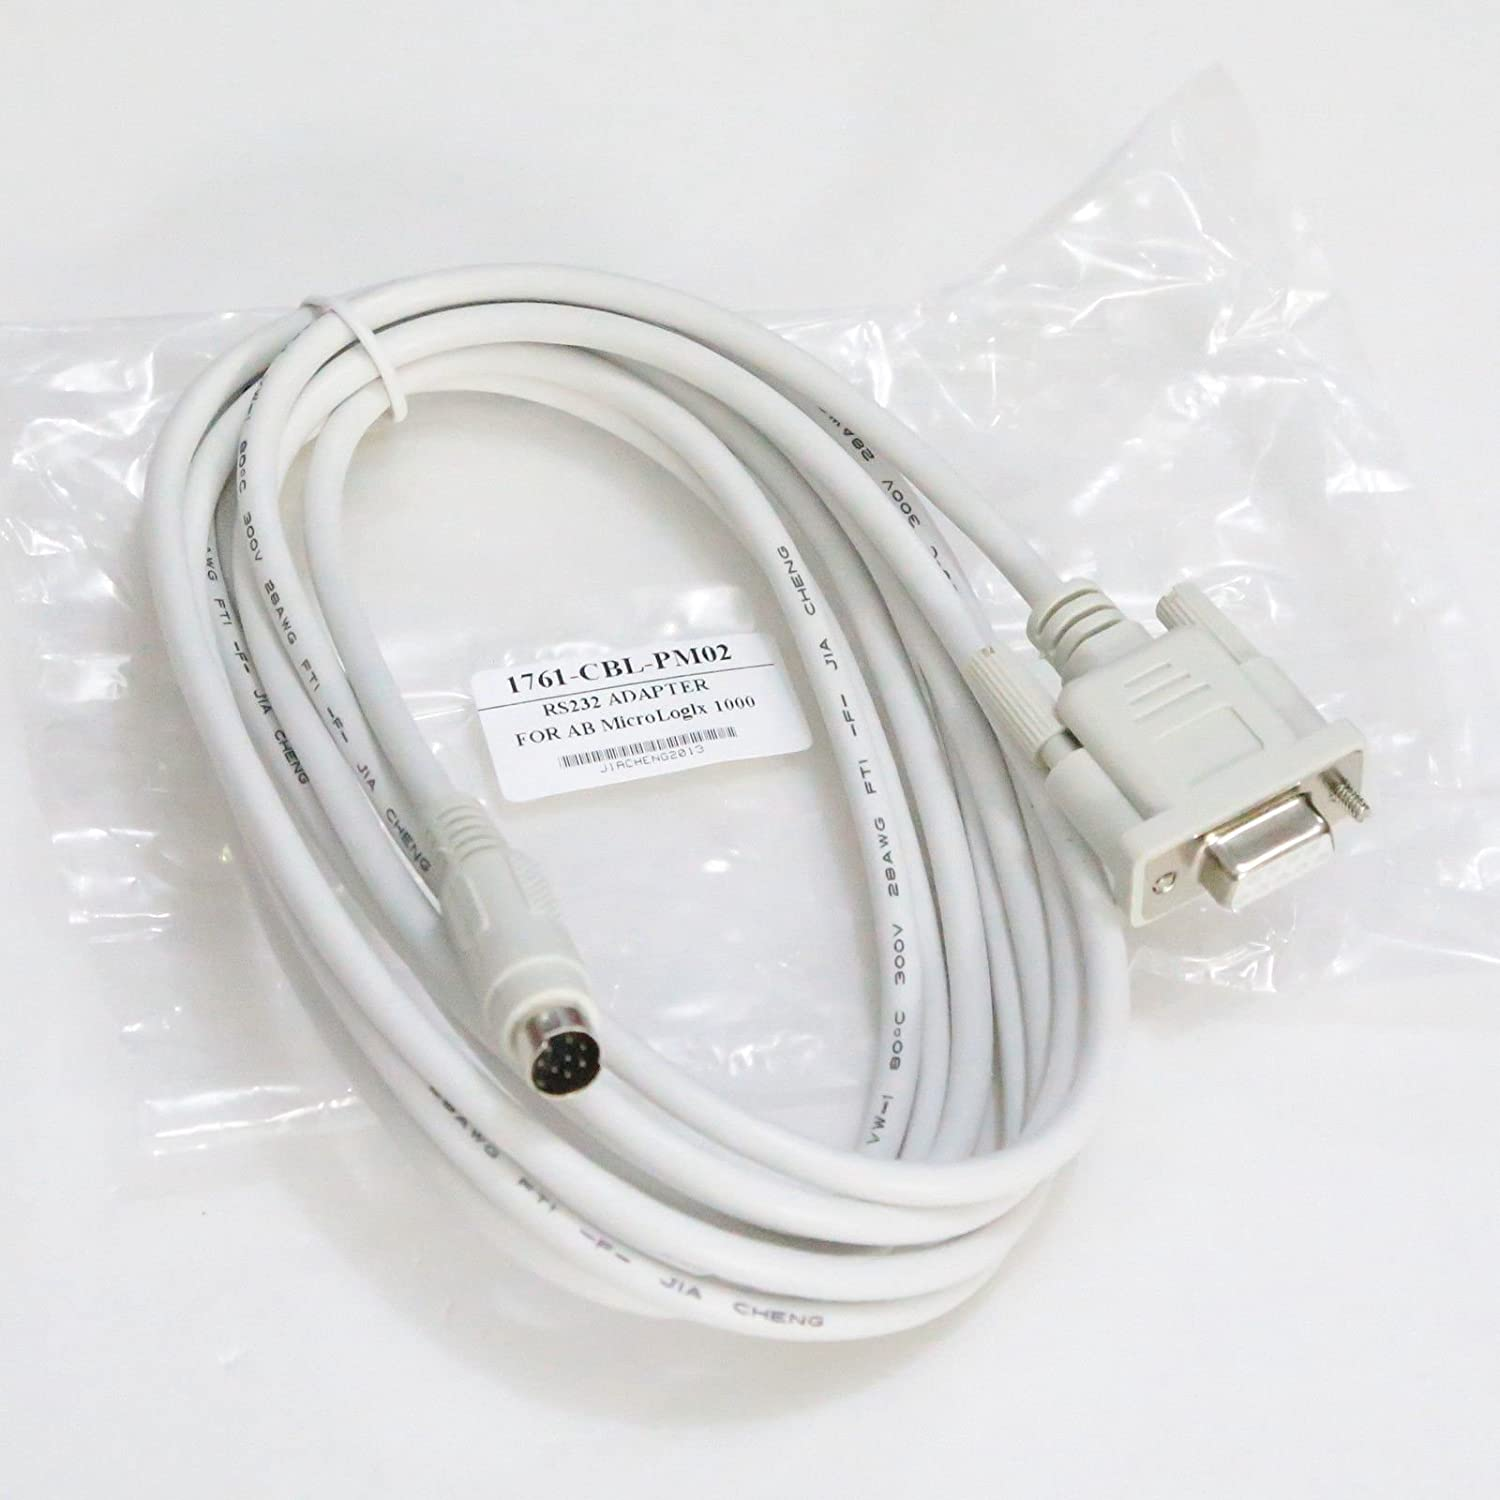 Programming Cable for 1761-cbl-pm02 Ab Micrologix 1000/1200/1500 PLC ...